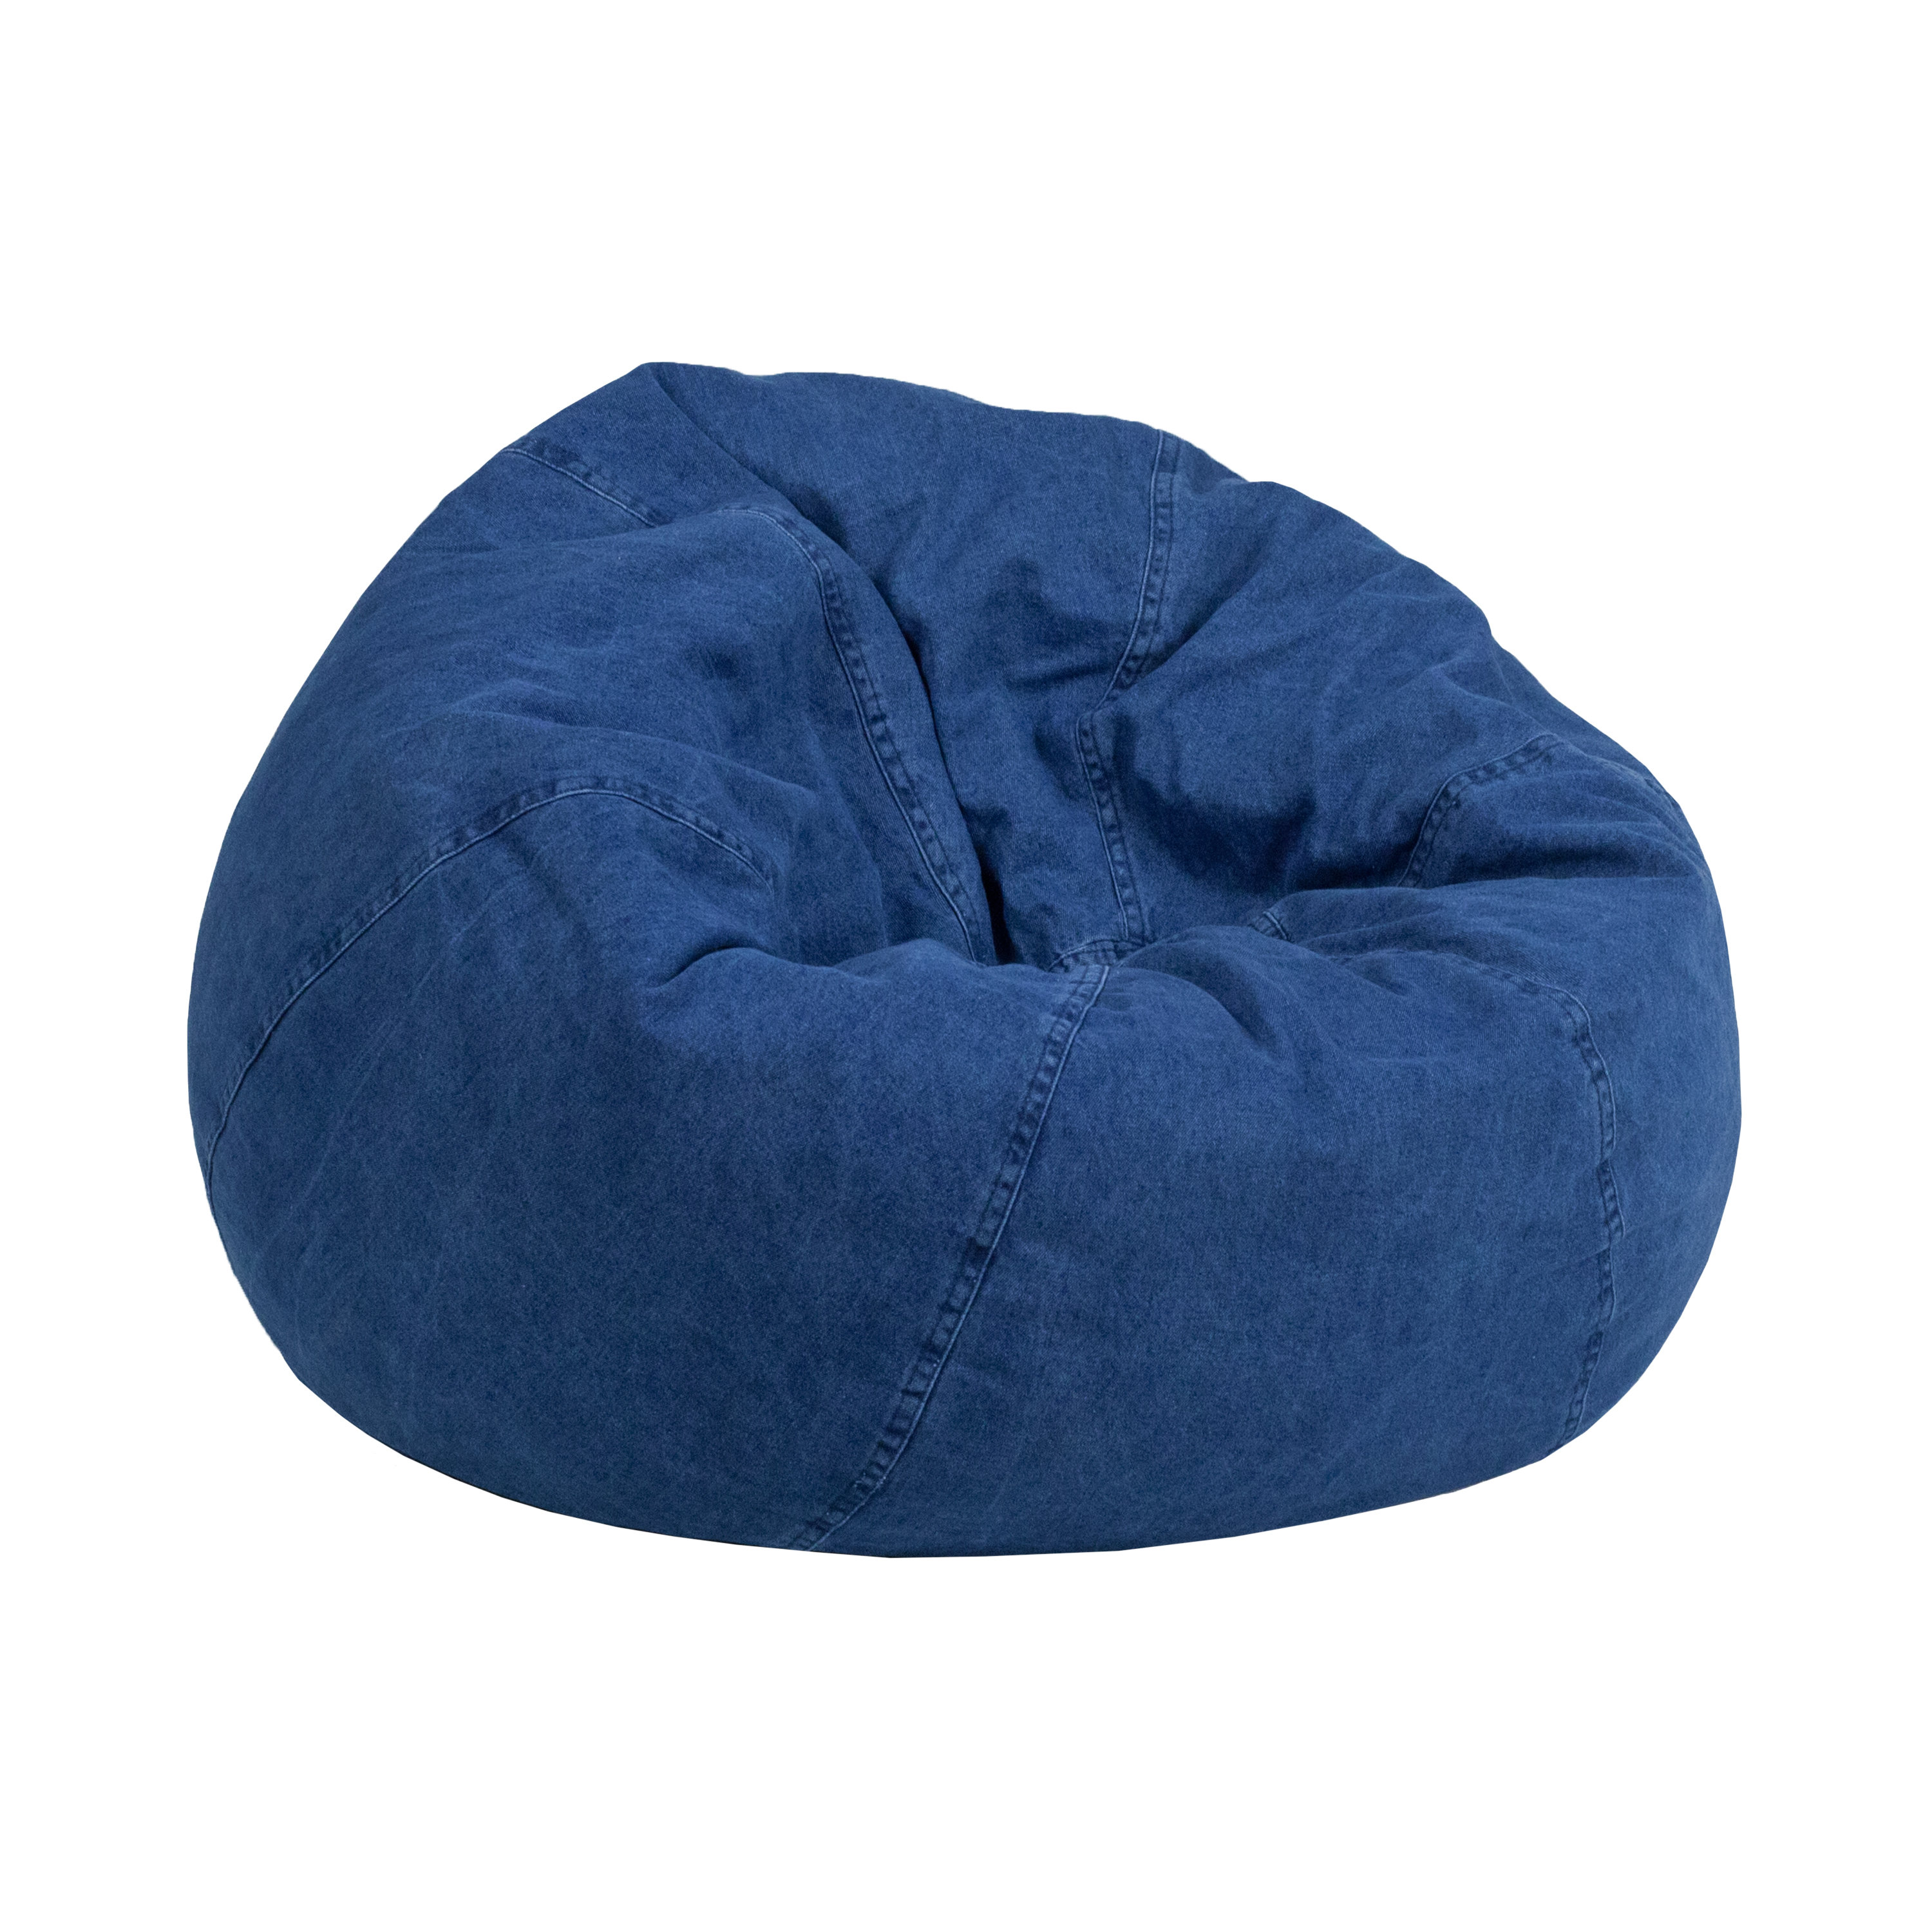 Remarkable Pillowfort Cocoon Bean Bag Chair With Pocket Gmtry Best Dining Table And Chair Ideas Images Gmtryco